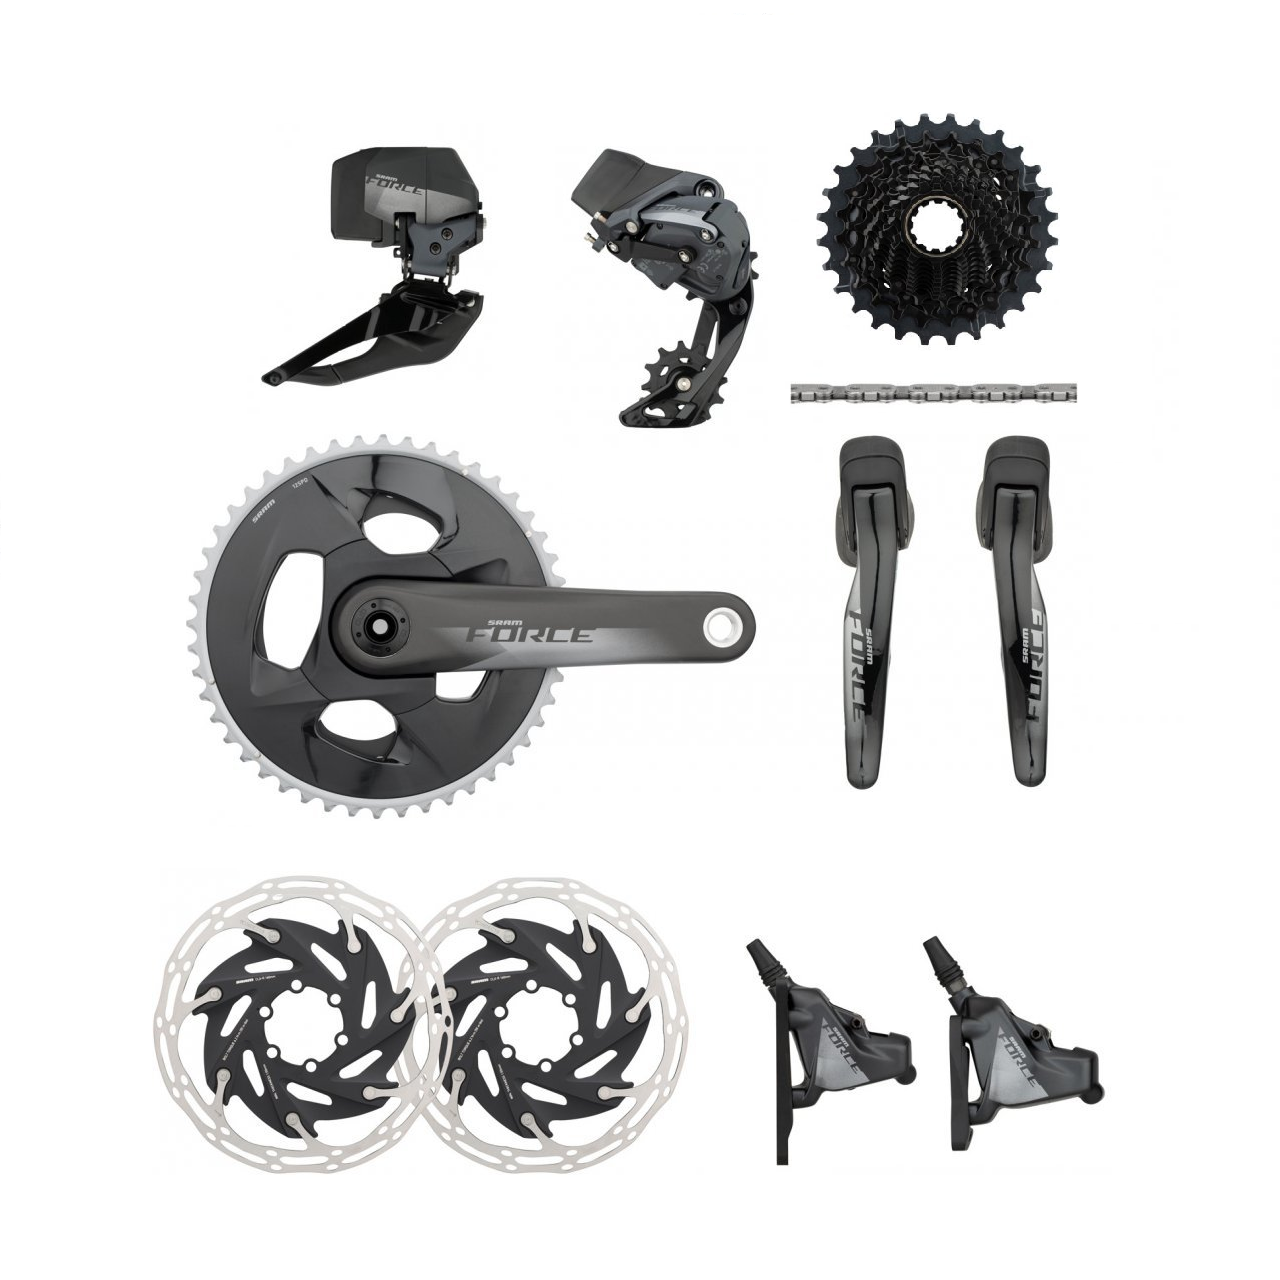 SRAM Components > Groupsets SRAM Force Etap AXS 2x12 HRD FM Groupset